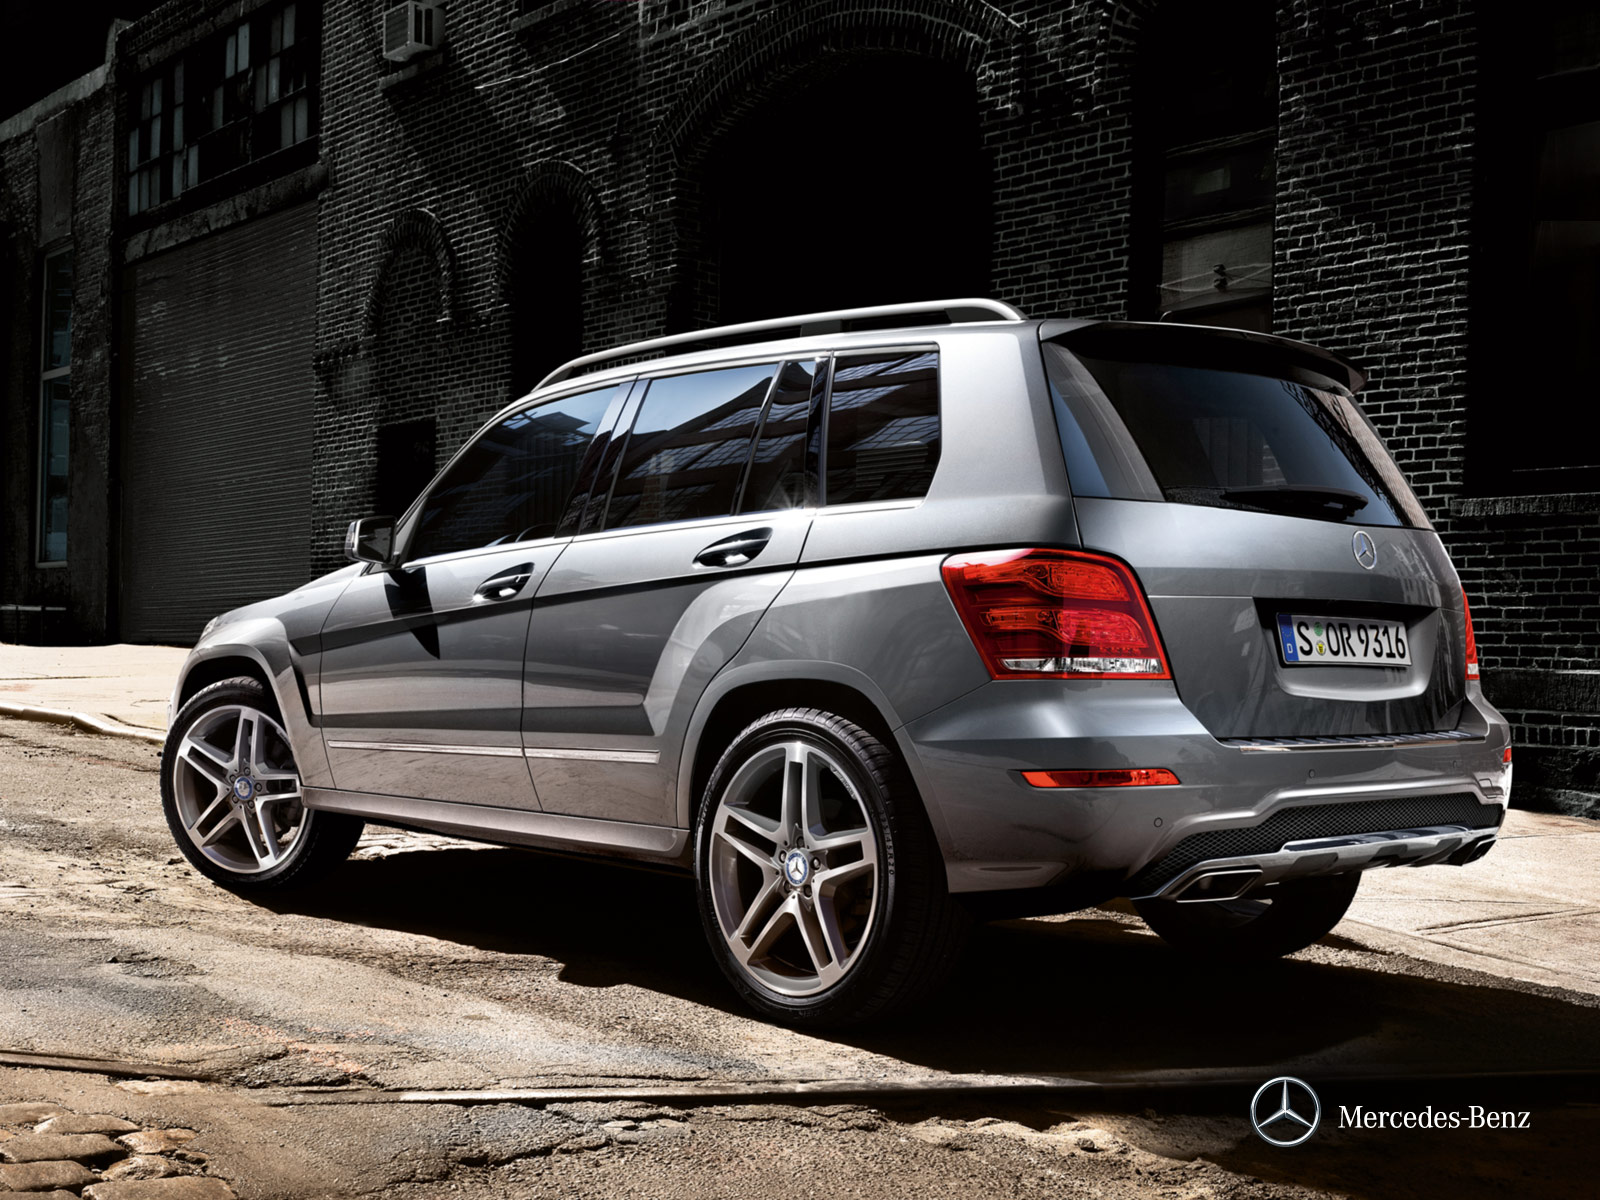 mercedes benz glk class 2012 glk 300 4matic in uae new